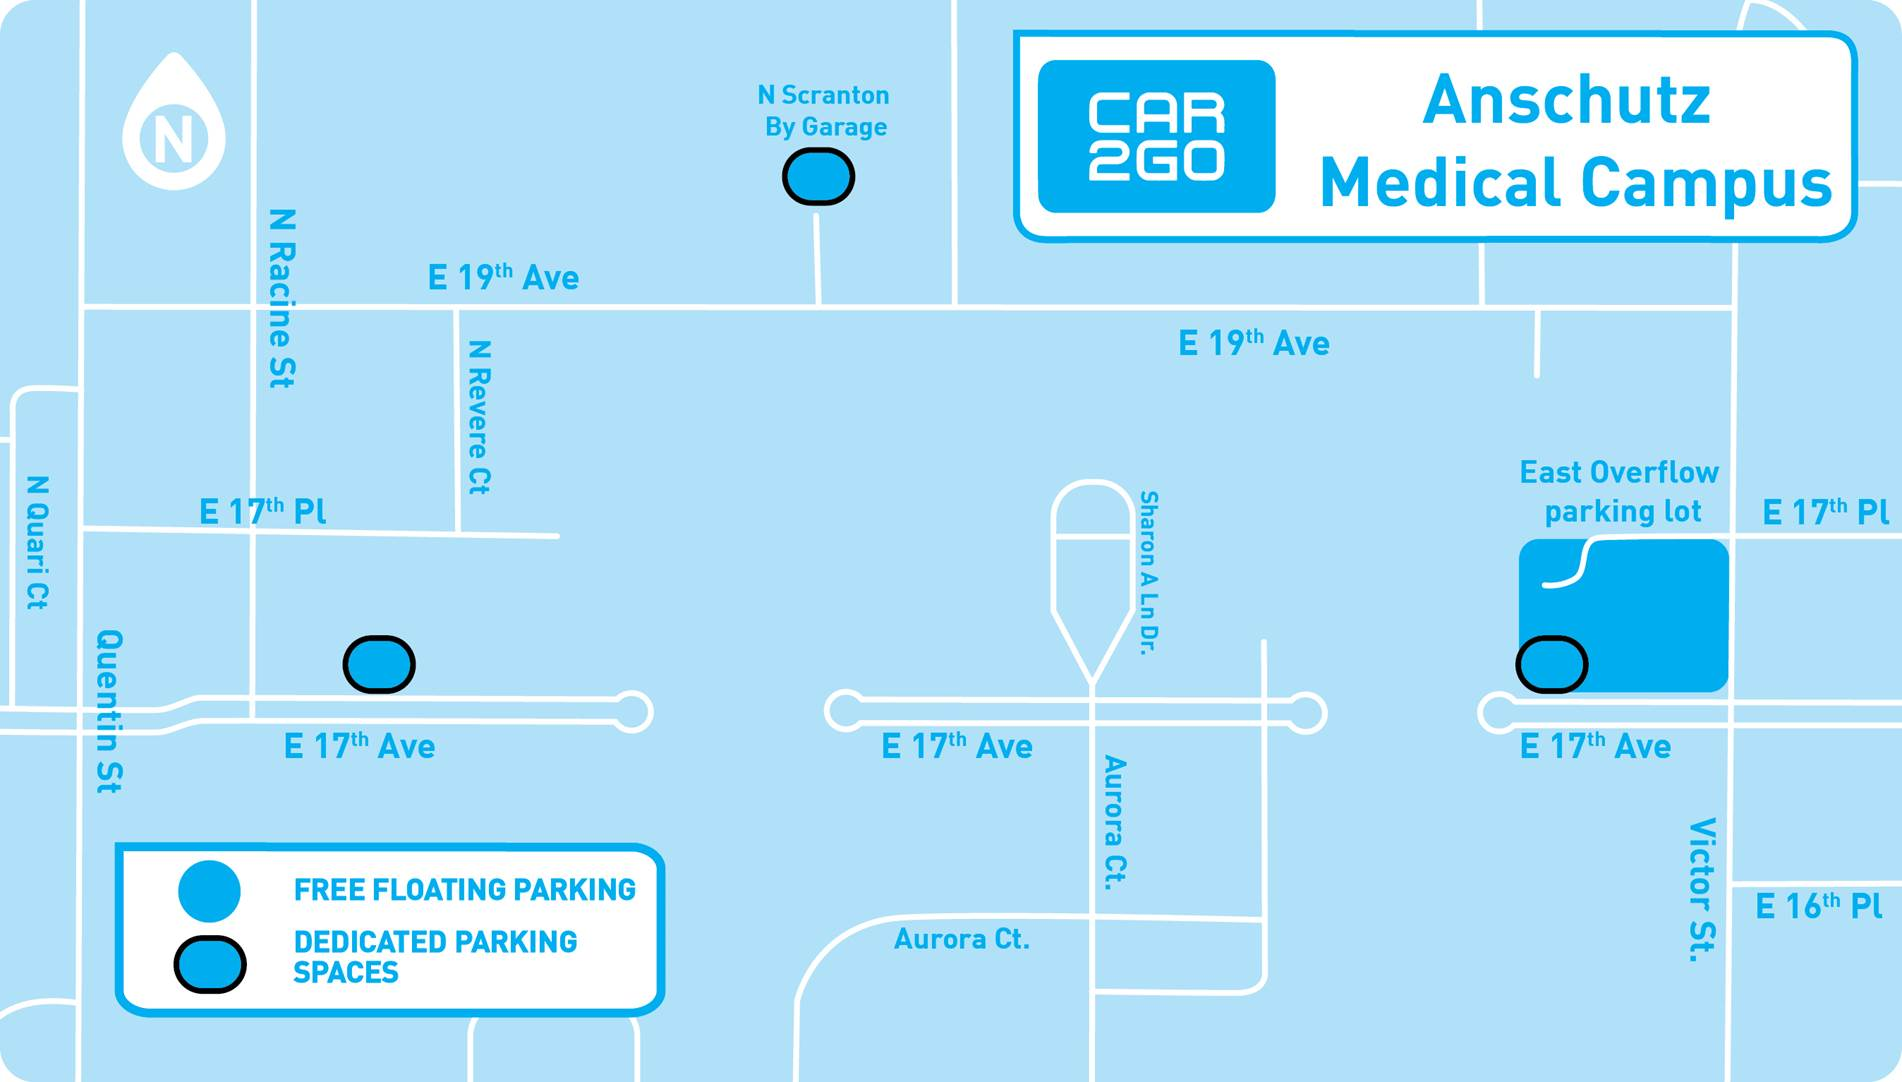 Car2go Adds Dedicated Parking Spaces To Anschutz Campus In Aurora